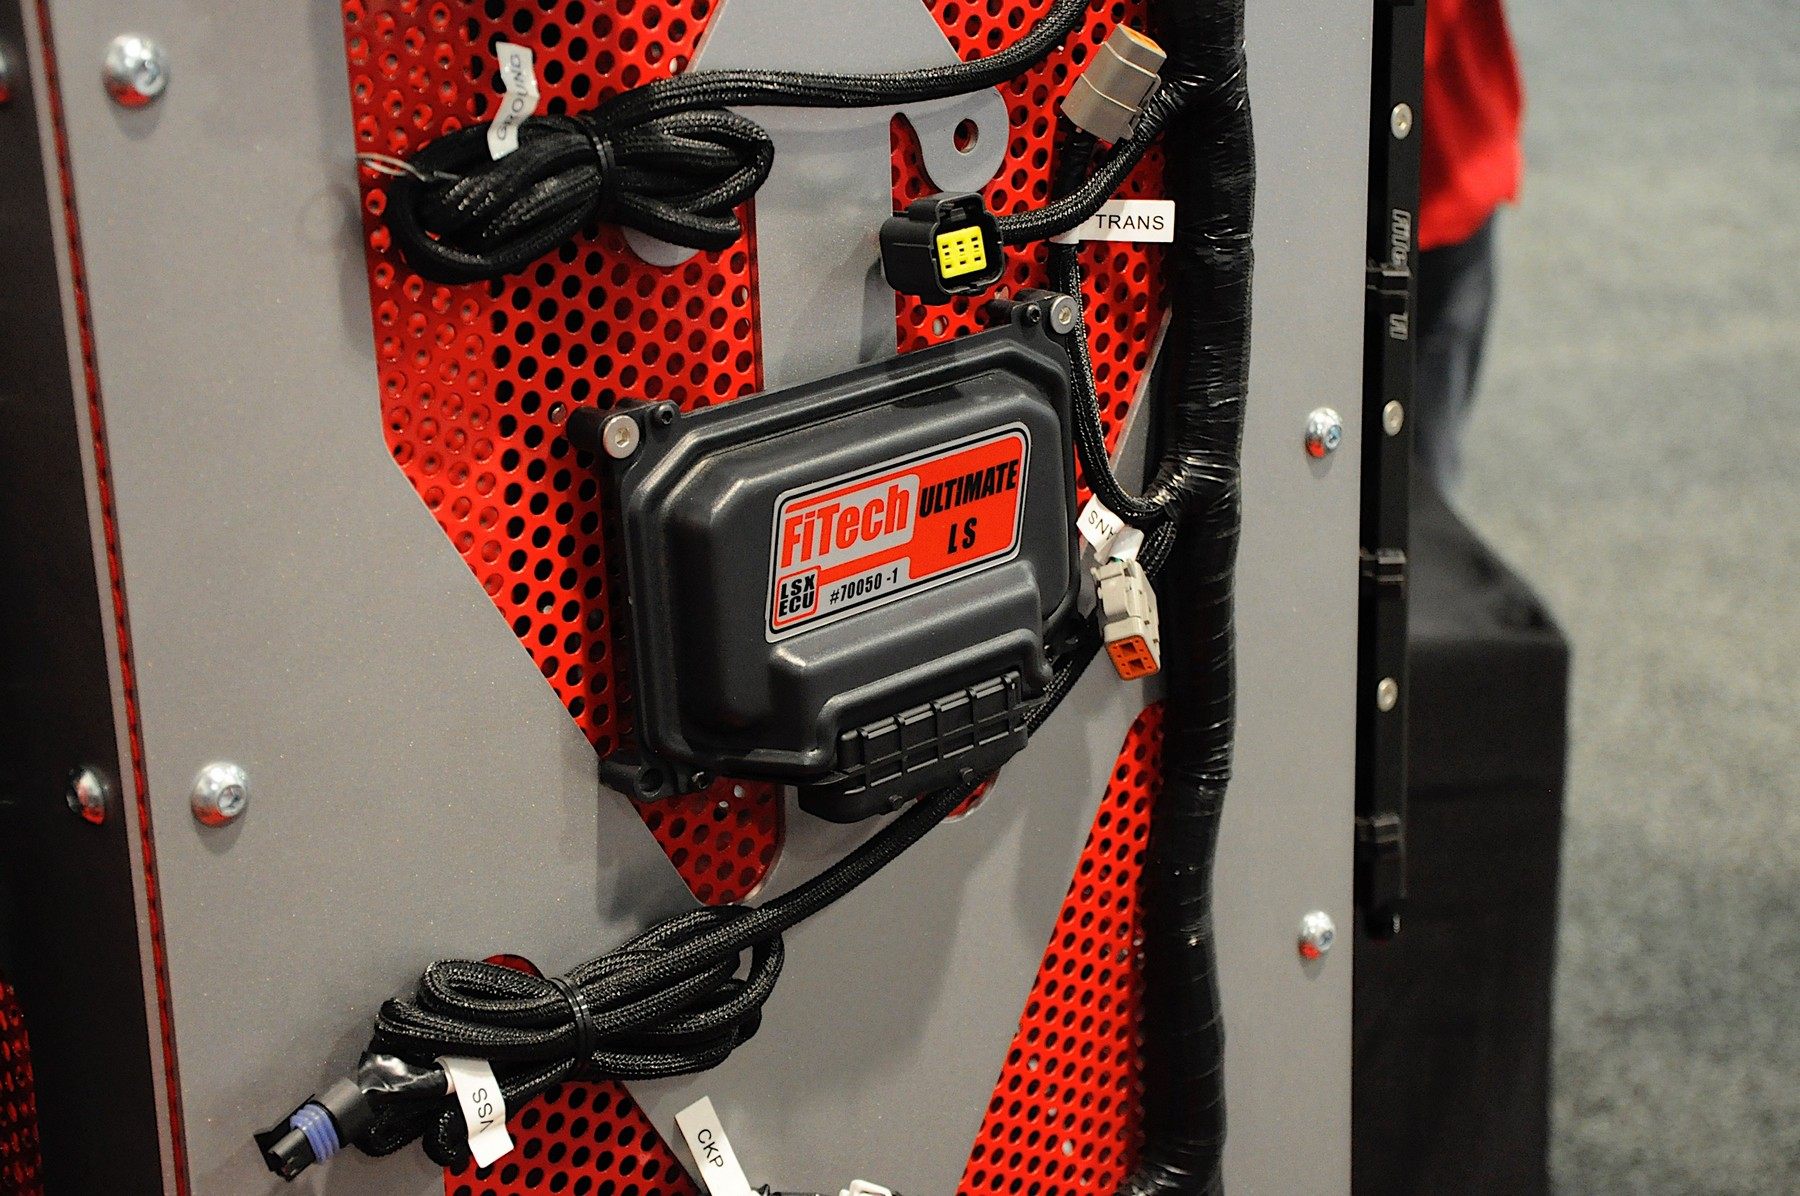 hight resolution of bryce cegielski from fitech explains just how plug and play the ultimate ls induction system really is with our wiring harness everything is provided to